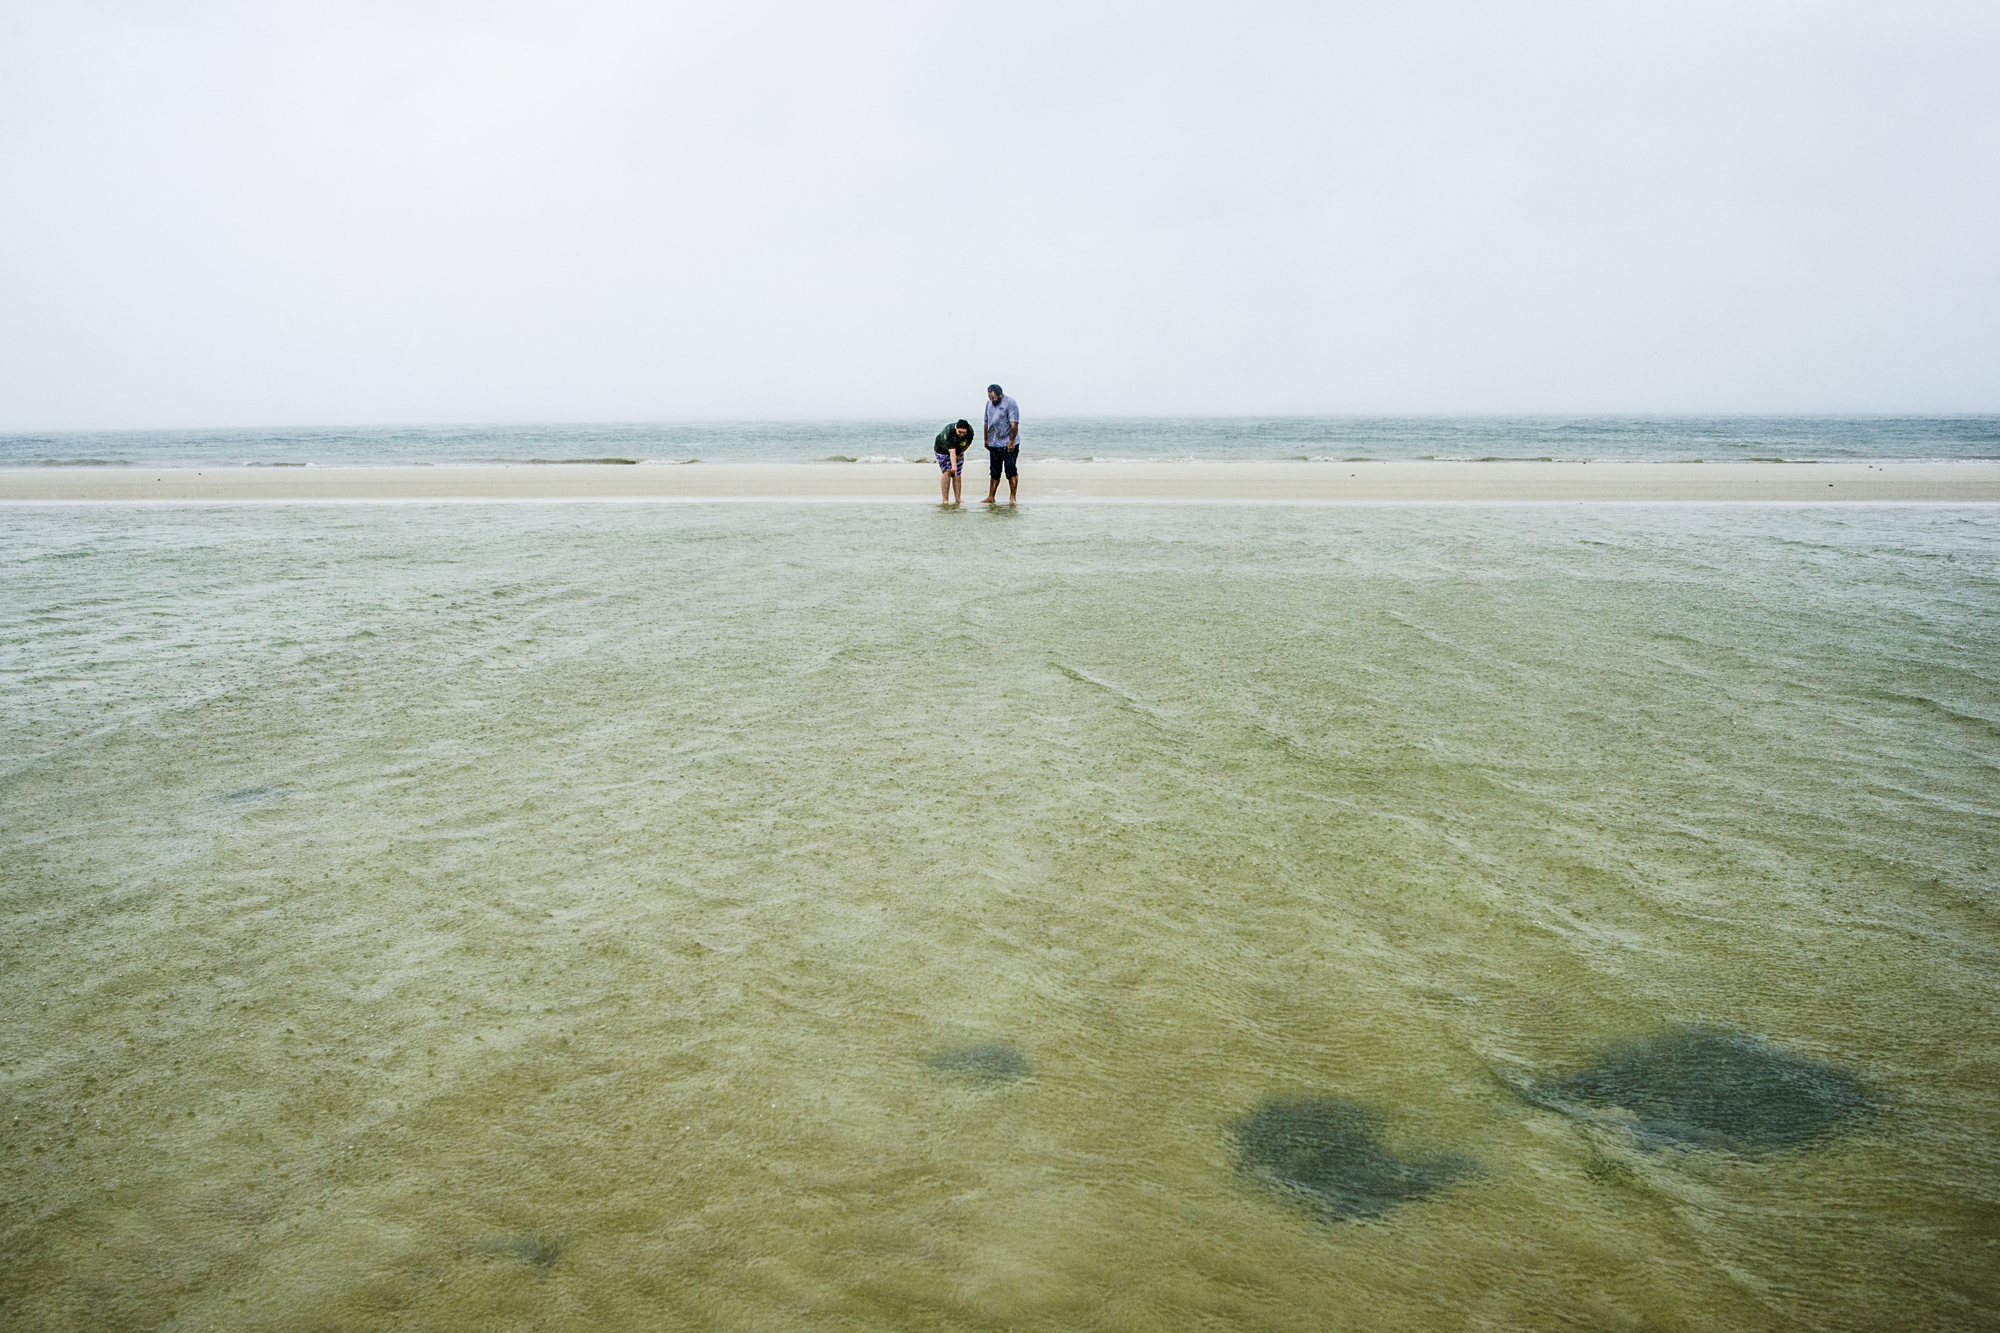 Corrie Salmon, left, and her father, Cory Salmon, at Vanderbilt Beach the day of Hurricane Irma. The Category 5 hurricane caused the water to recede further into the ocean as it began up the Gulf coast of Florida.